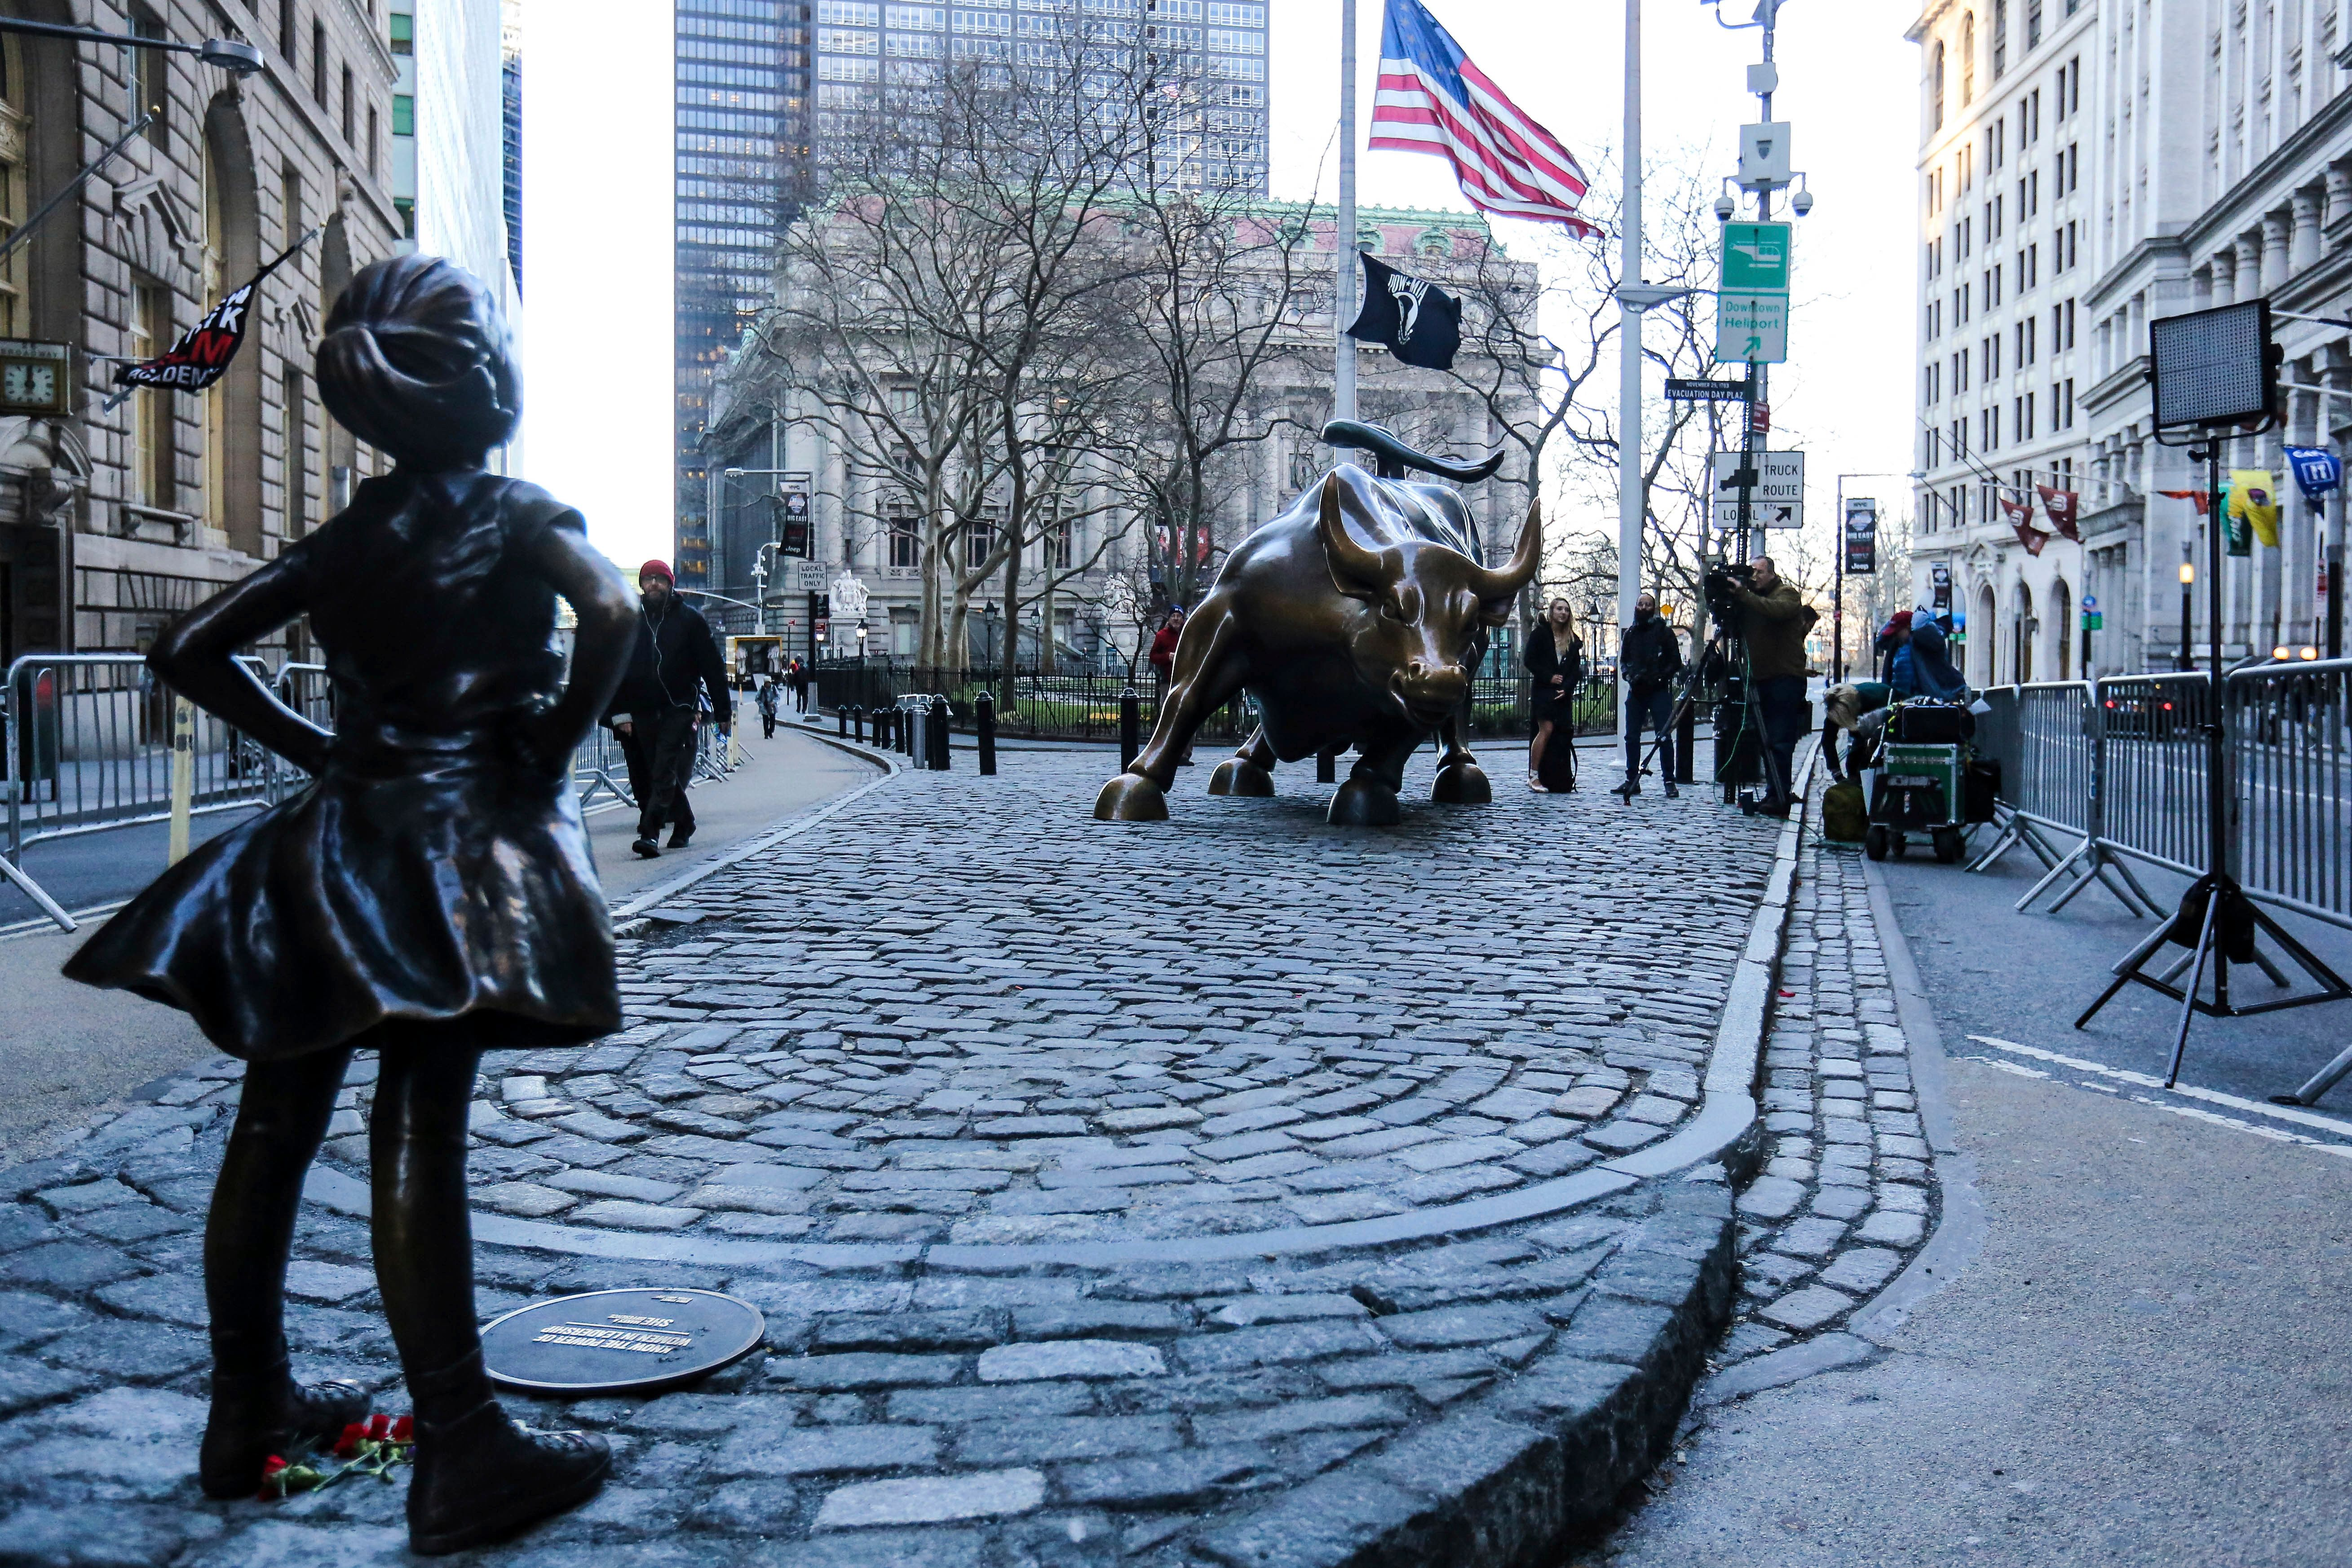 Hundreds of tourists take photos of 'The Fearless Girl' statue as it stands across from the Wall Street's famous Charging Bul